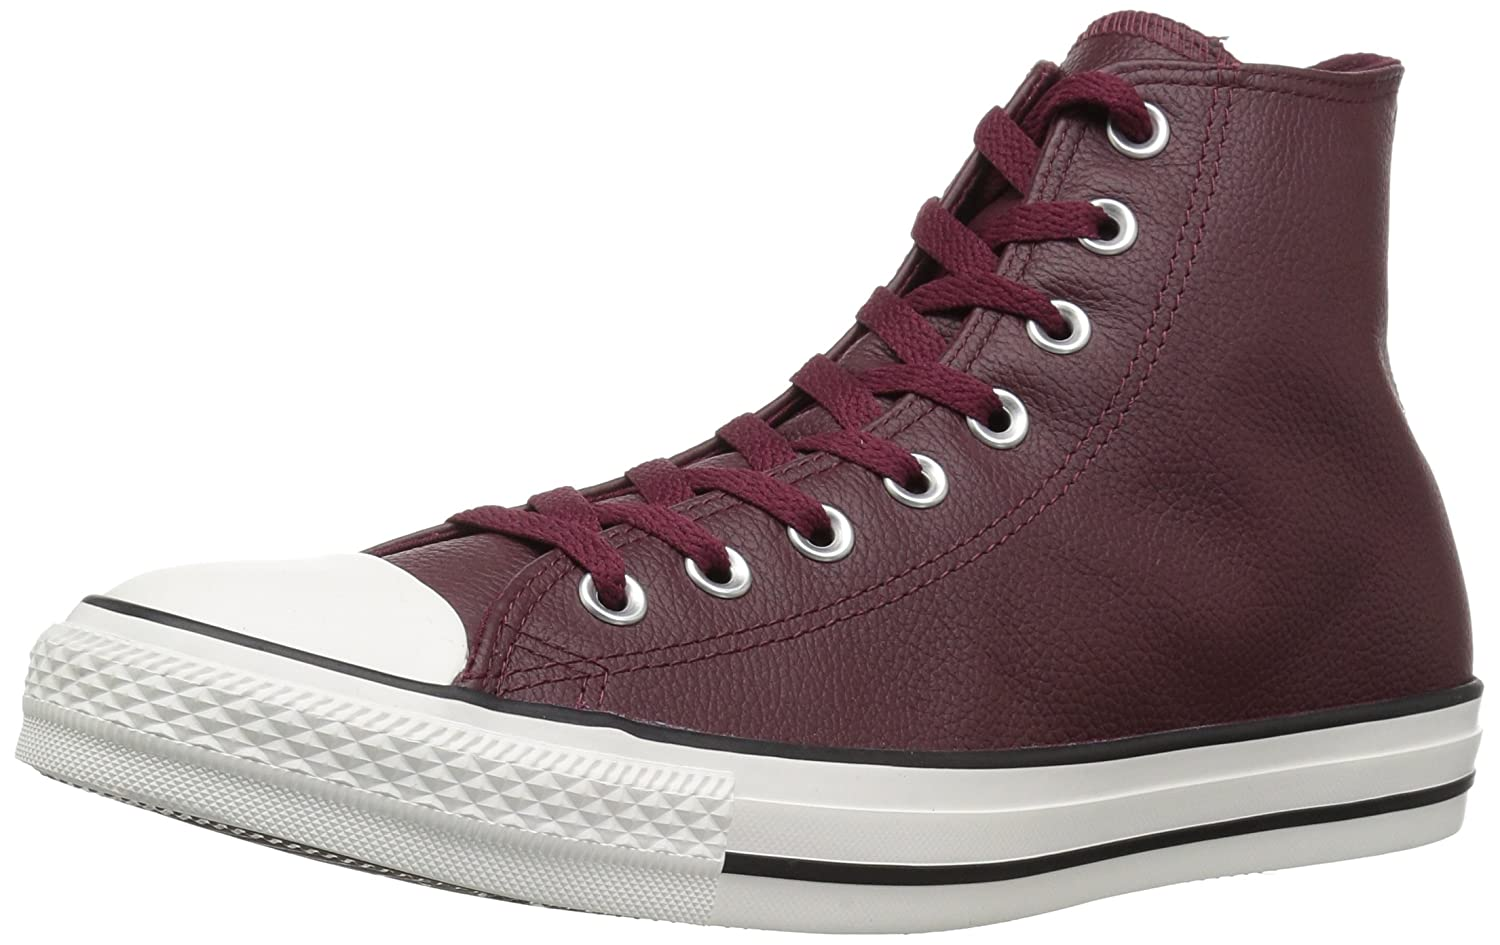 Converse Chuck Taylor All Star Tumbled Leather High Top Sneaker B079C64Y5P 3.5 M US|Dark Burgundy/Dark Burgundy